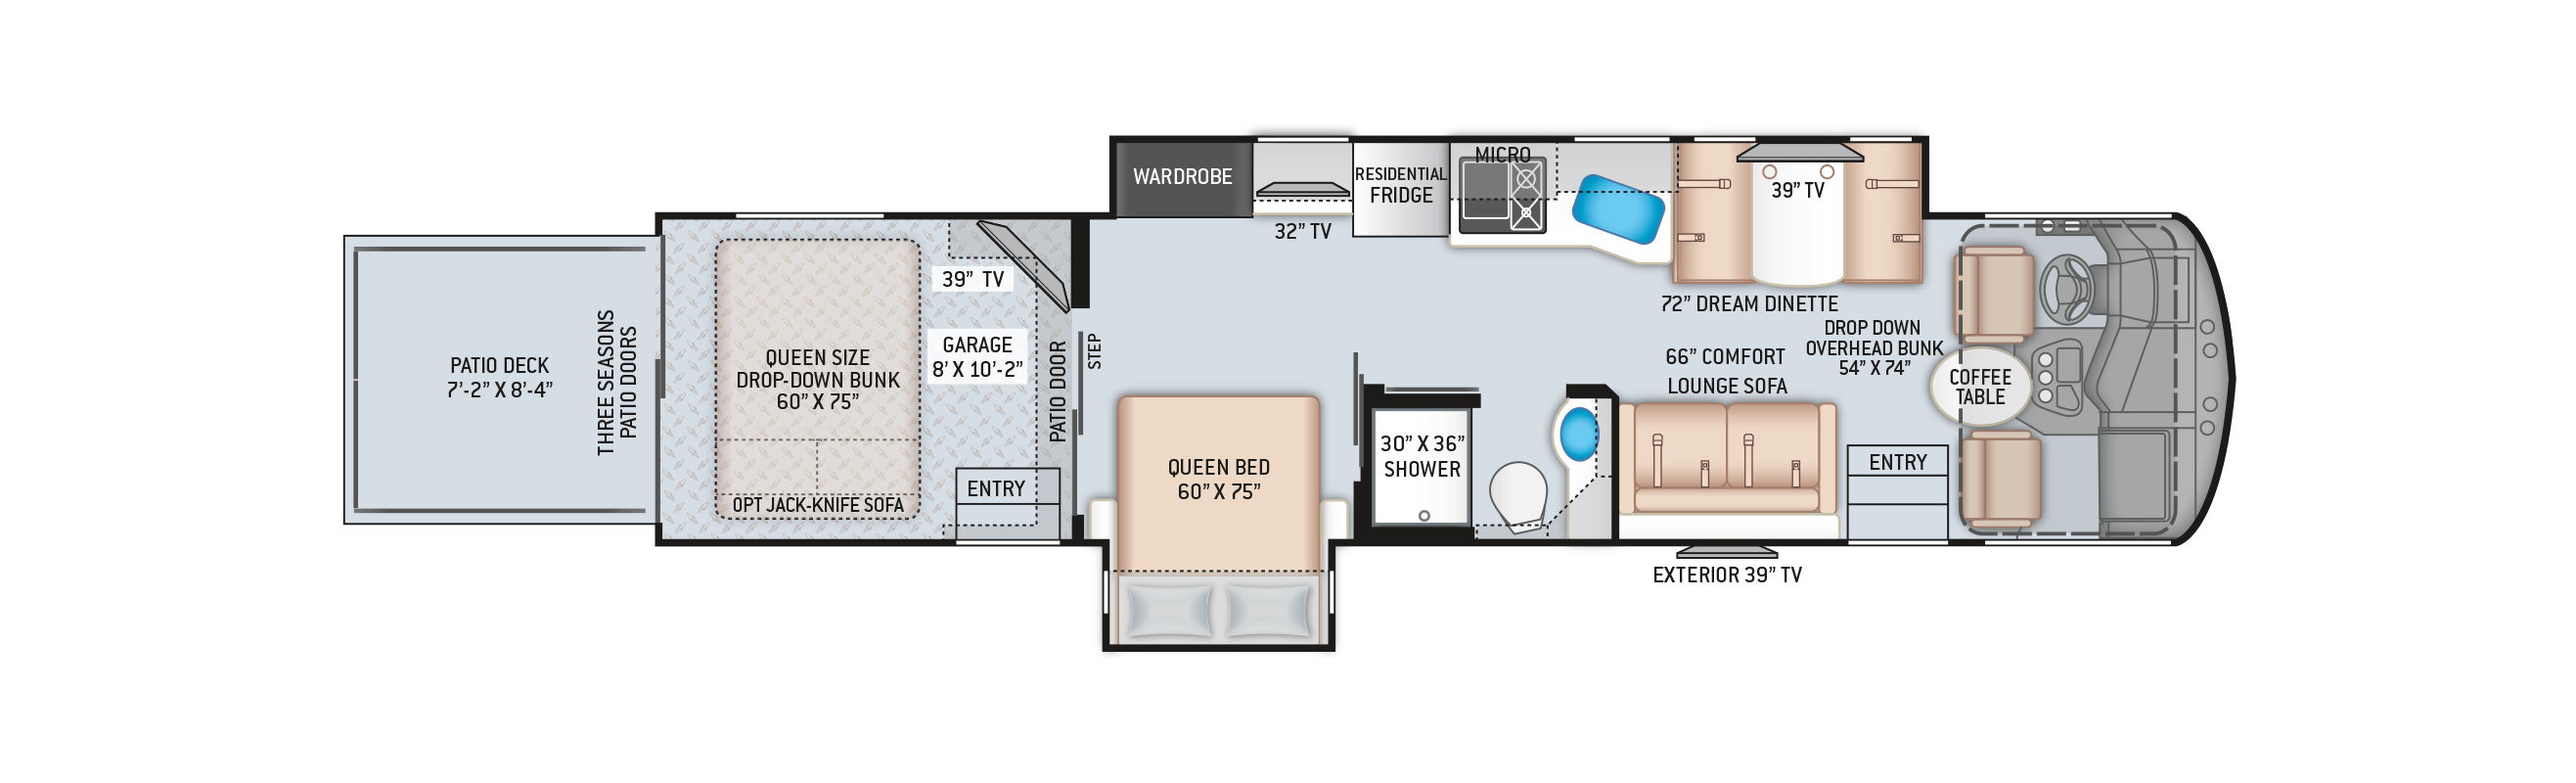 Outlaw Class A Toy Hauler RV 38MB Floor Plan